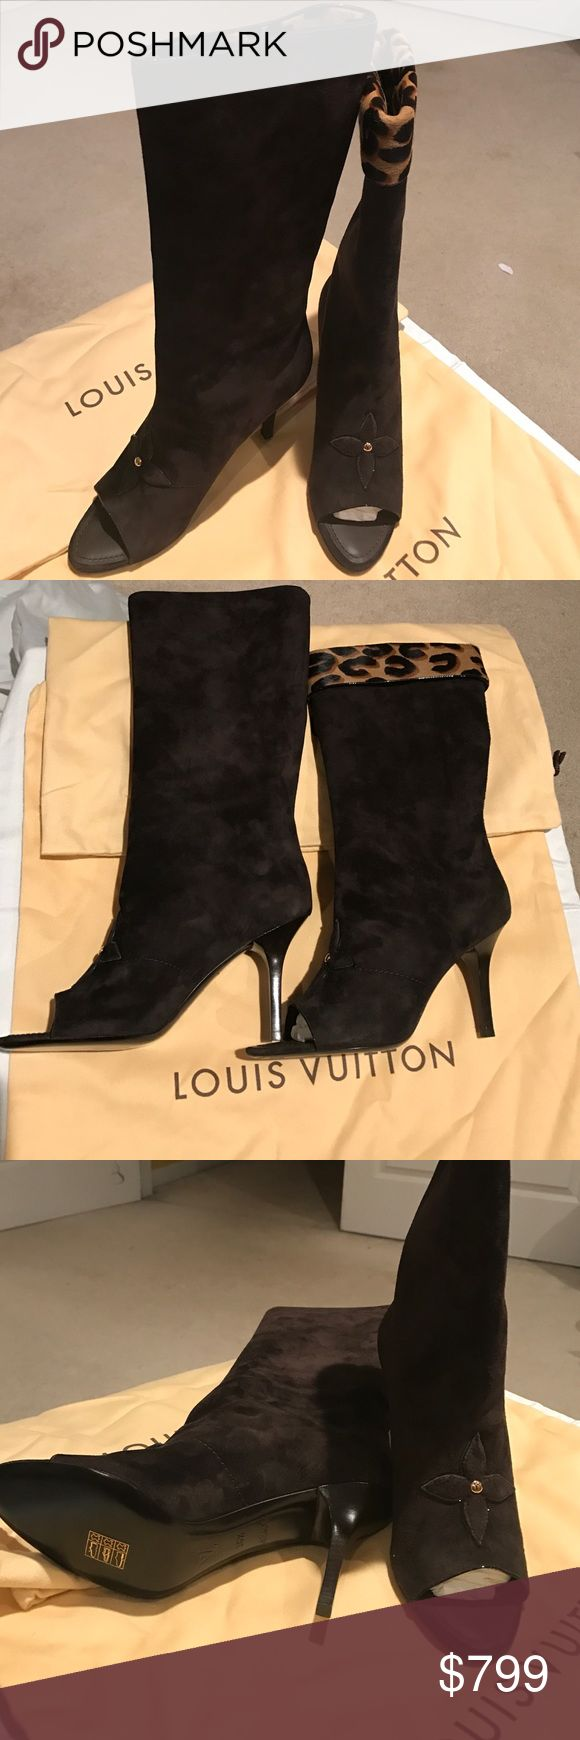 Louis Vuitton dressy suede boots All brand-new sexy Louis Vuitton boots with original packaging made in Italy . Size 36 1/2 equivalent to size 6 1/2 US. Perfect condition never worn. Louis Vuitton Shoes Heeled Boots